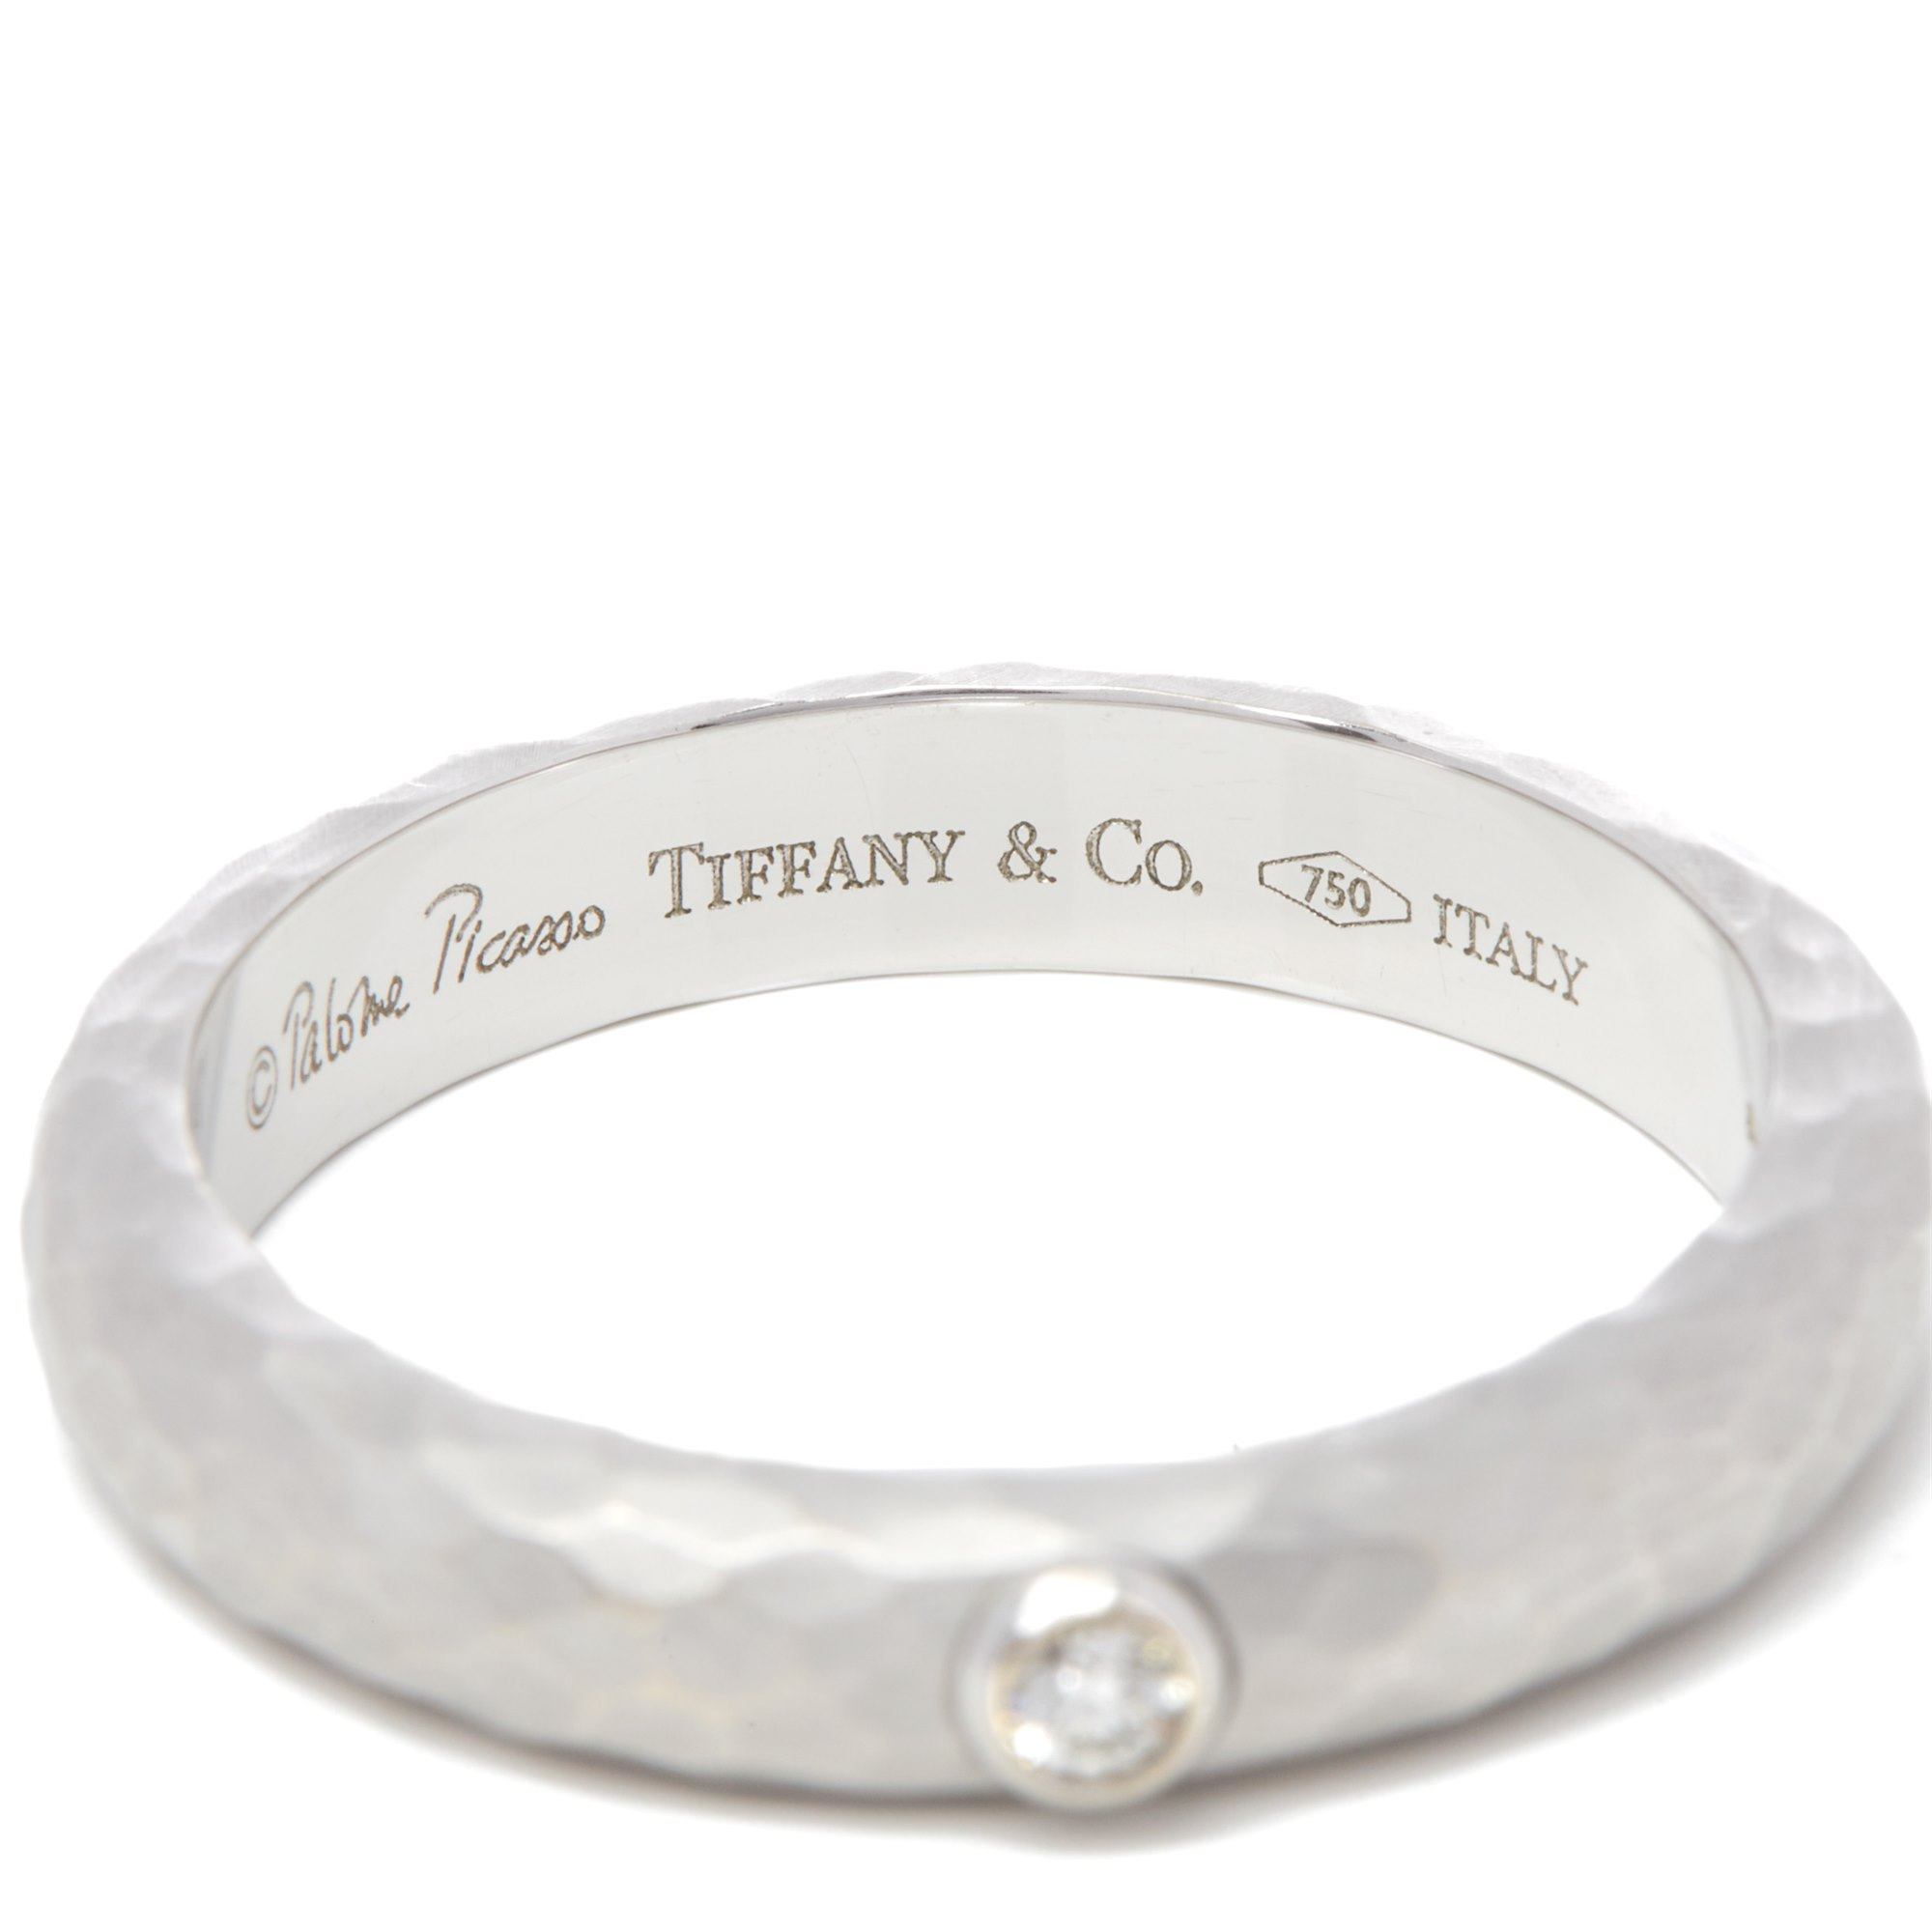 Tiffany & Co. 18k White Gold Paloma Picasso Hammered Finish Solitaire Diamond Ring